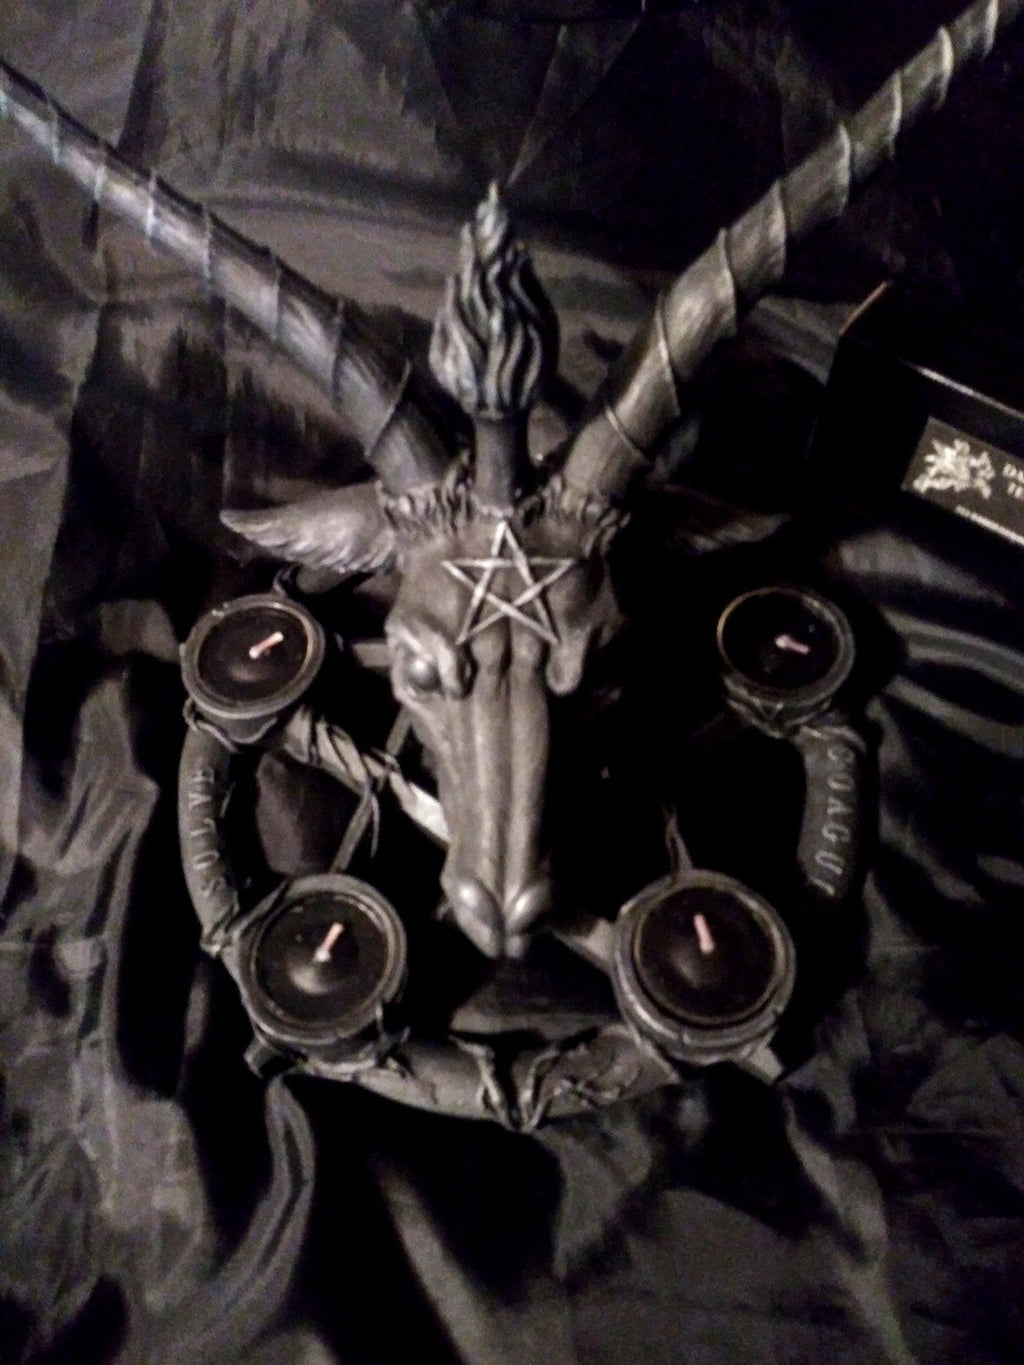 Baphomet & Pentagram Candle Holder Holders